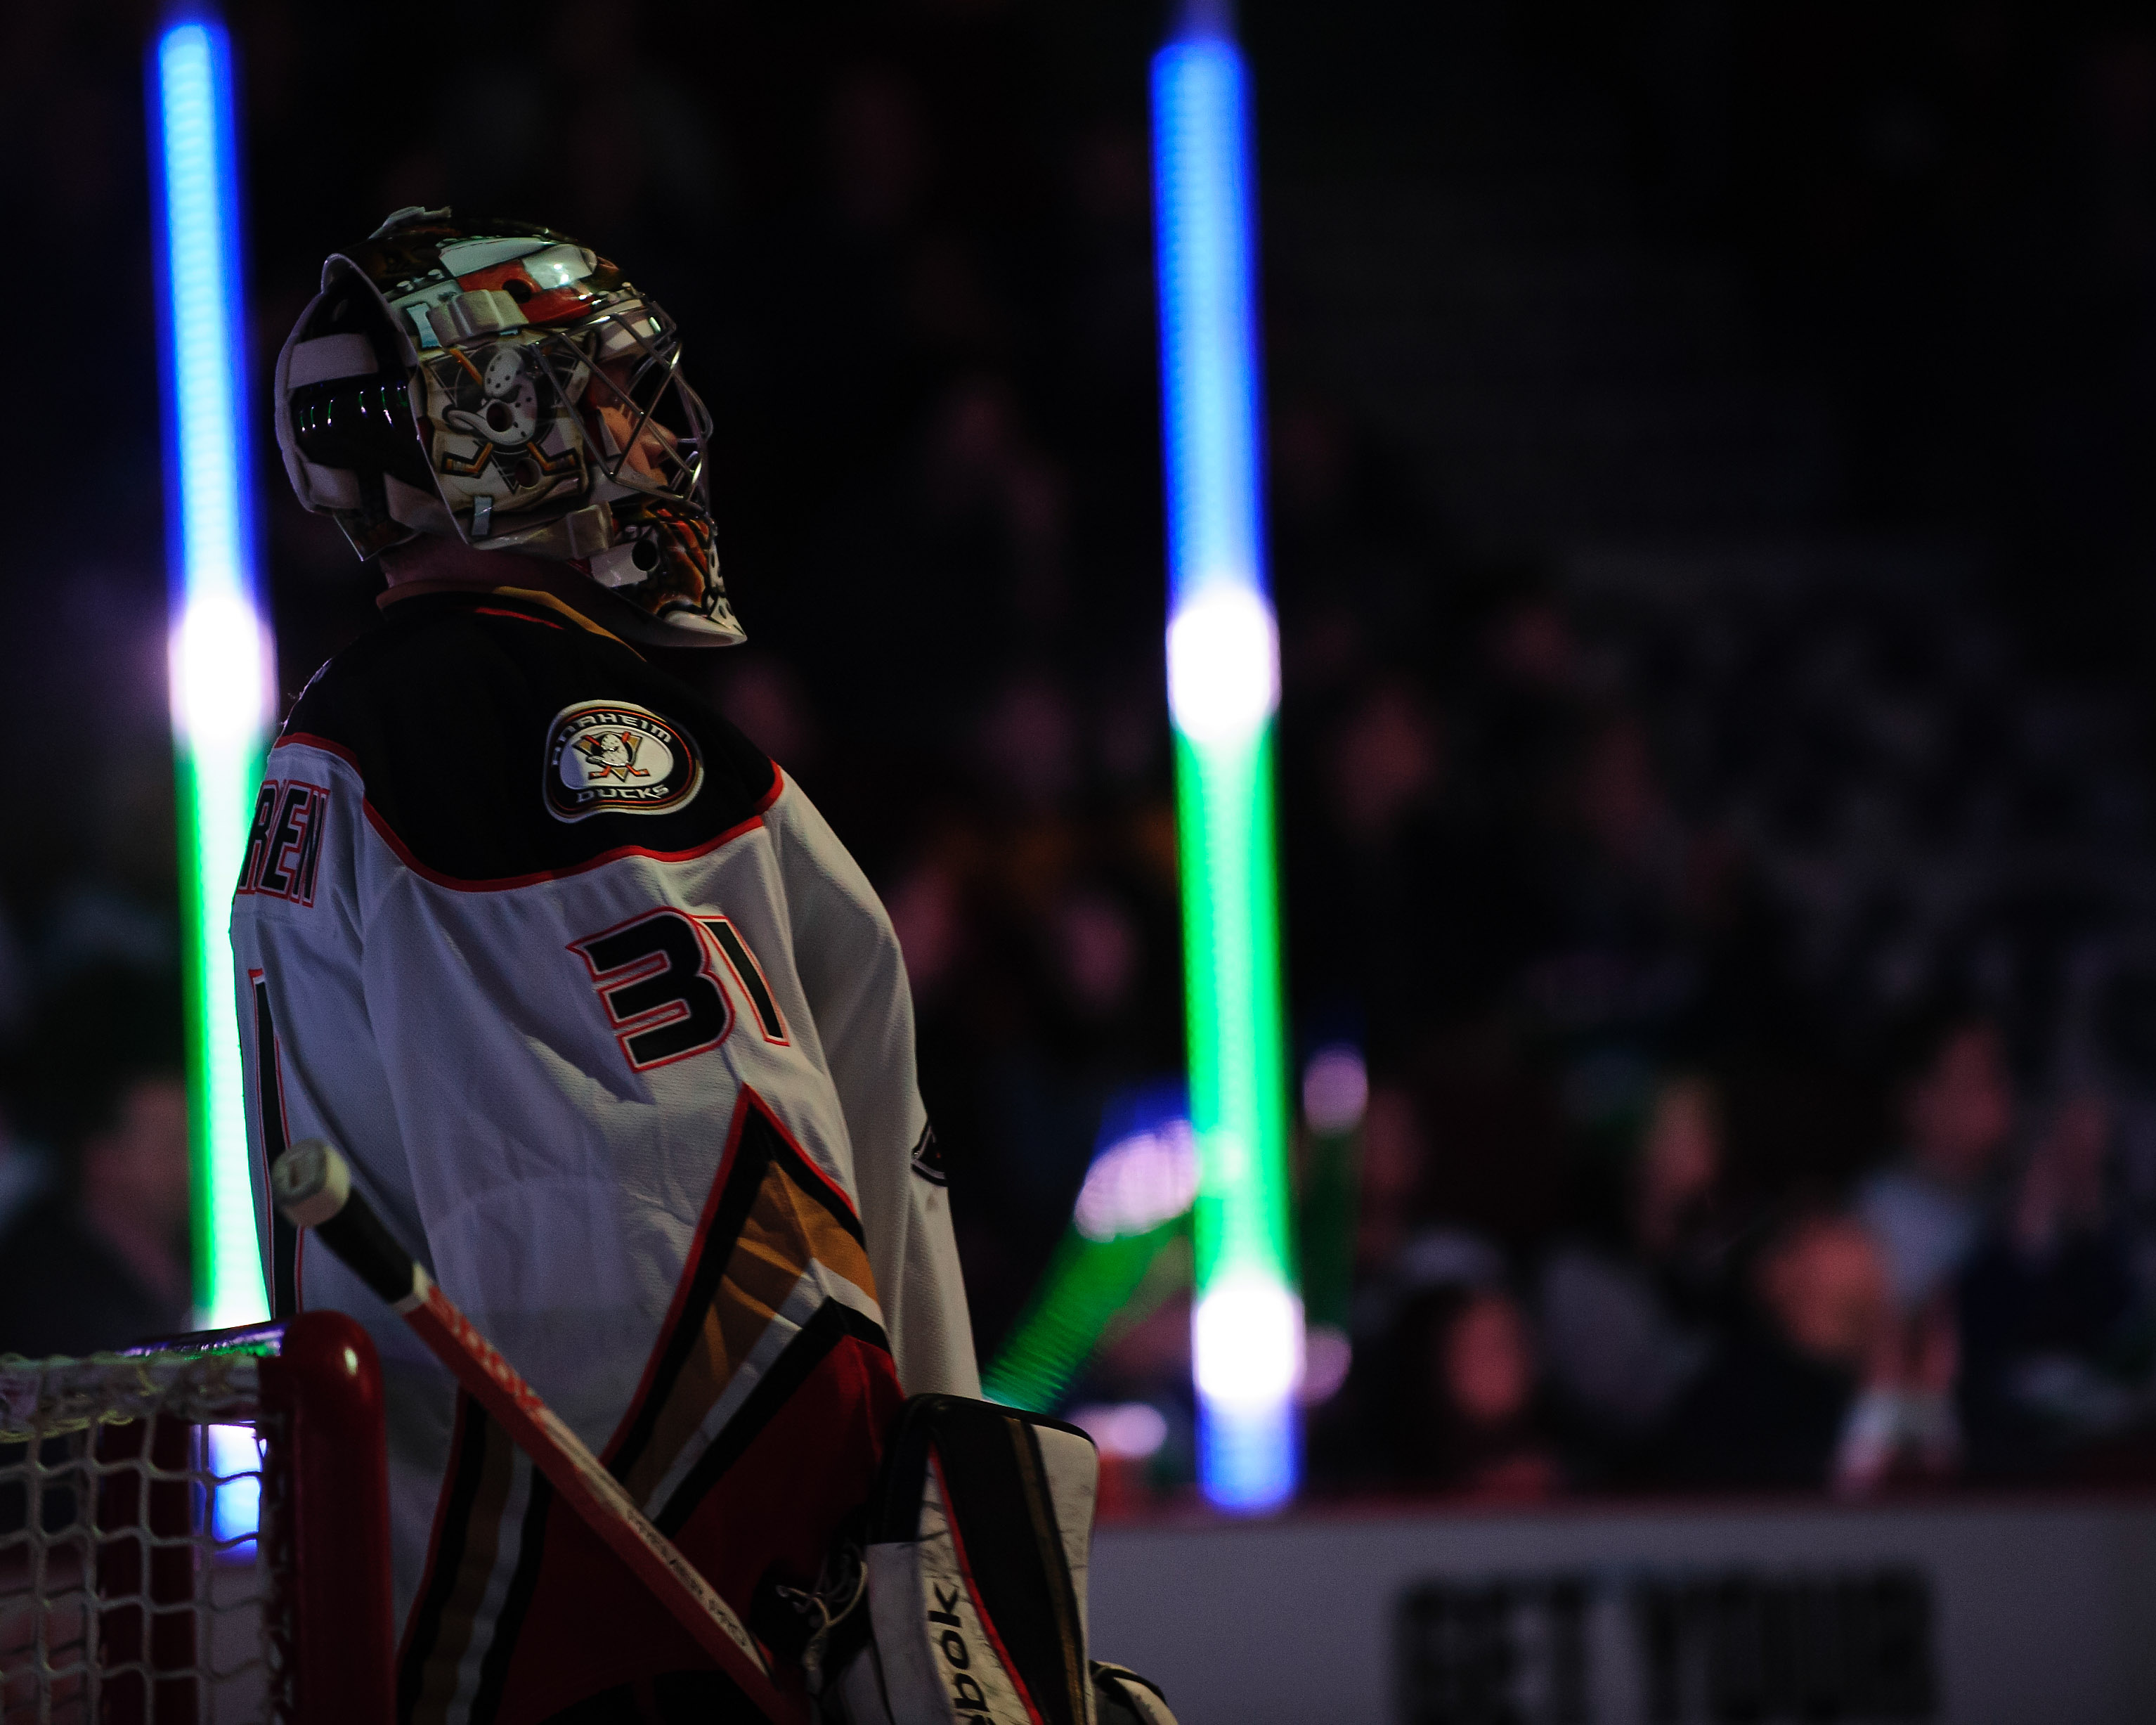 Frederik Andersen waits to face the Vancouver Canucks earlier this month.